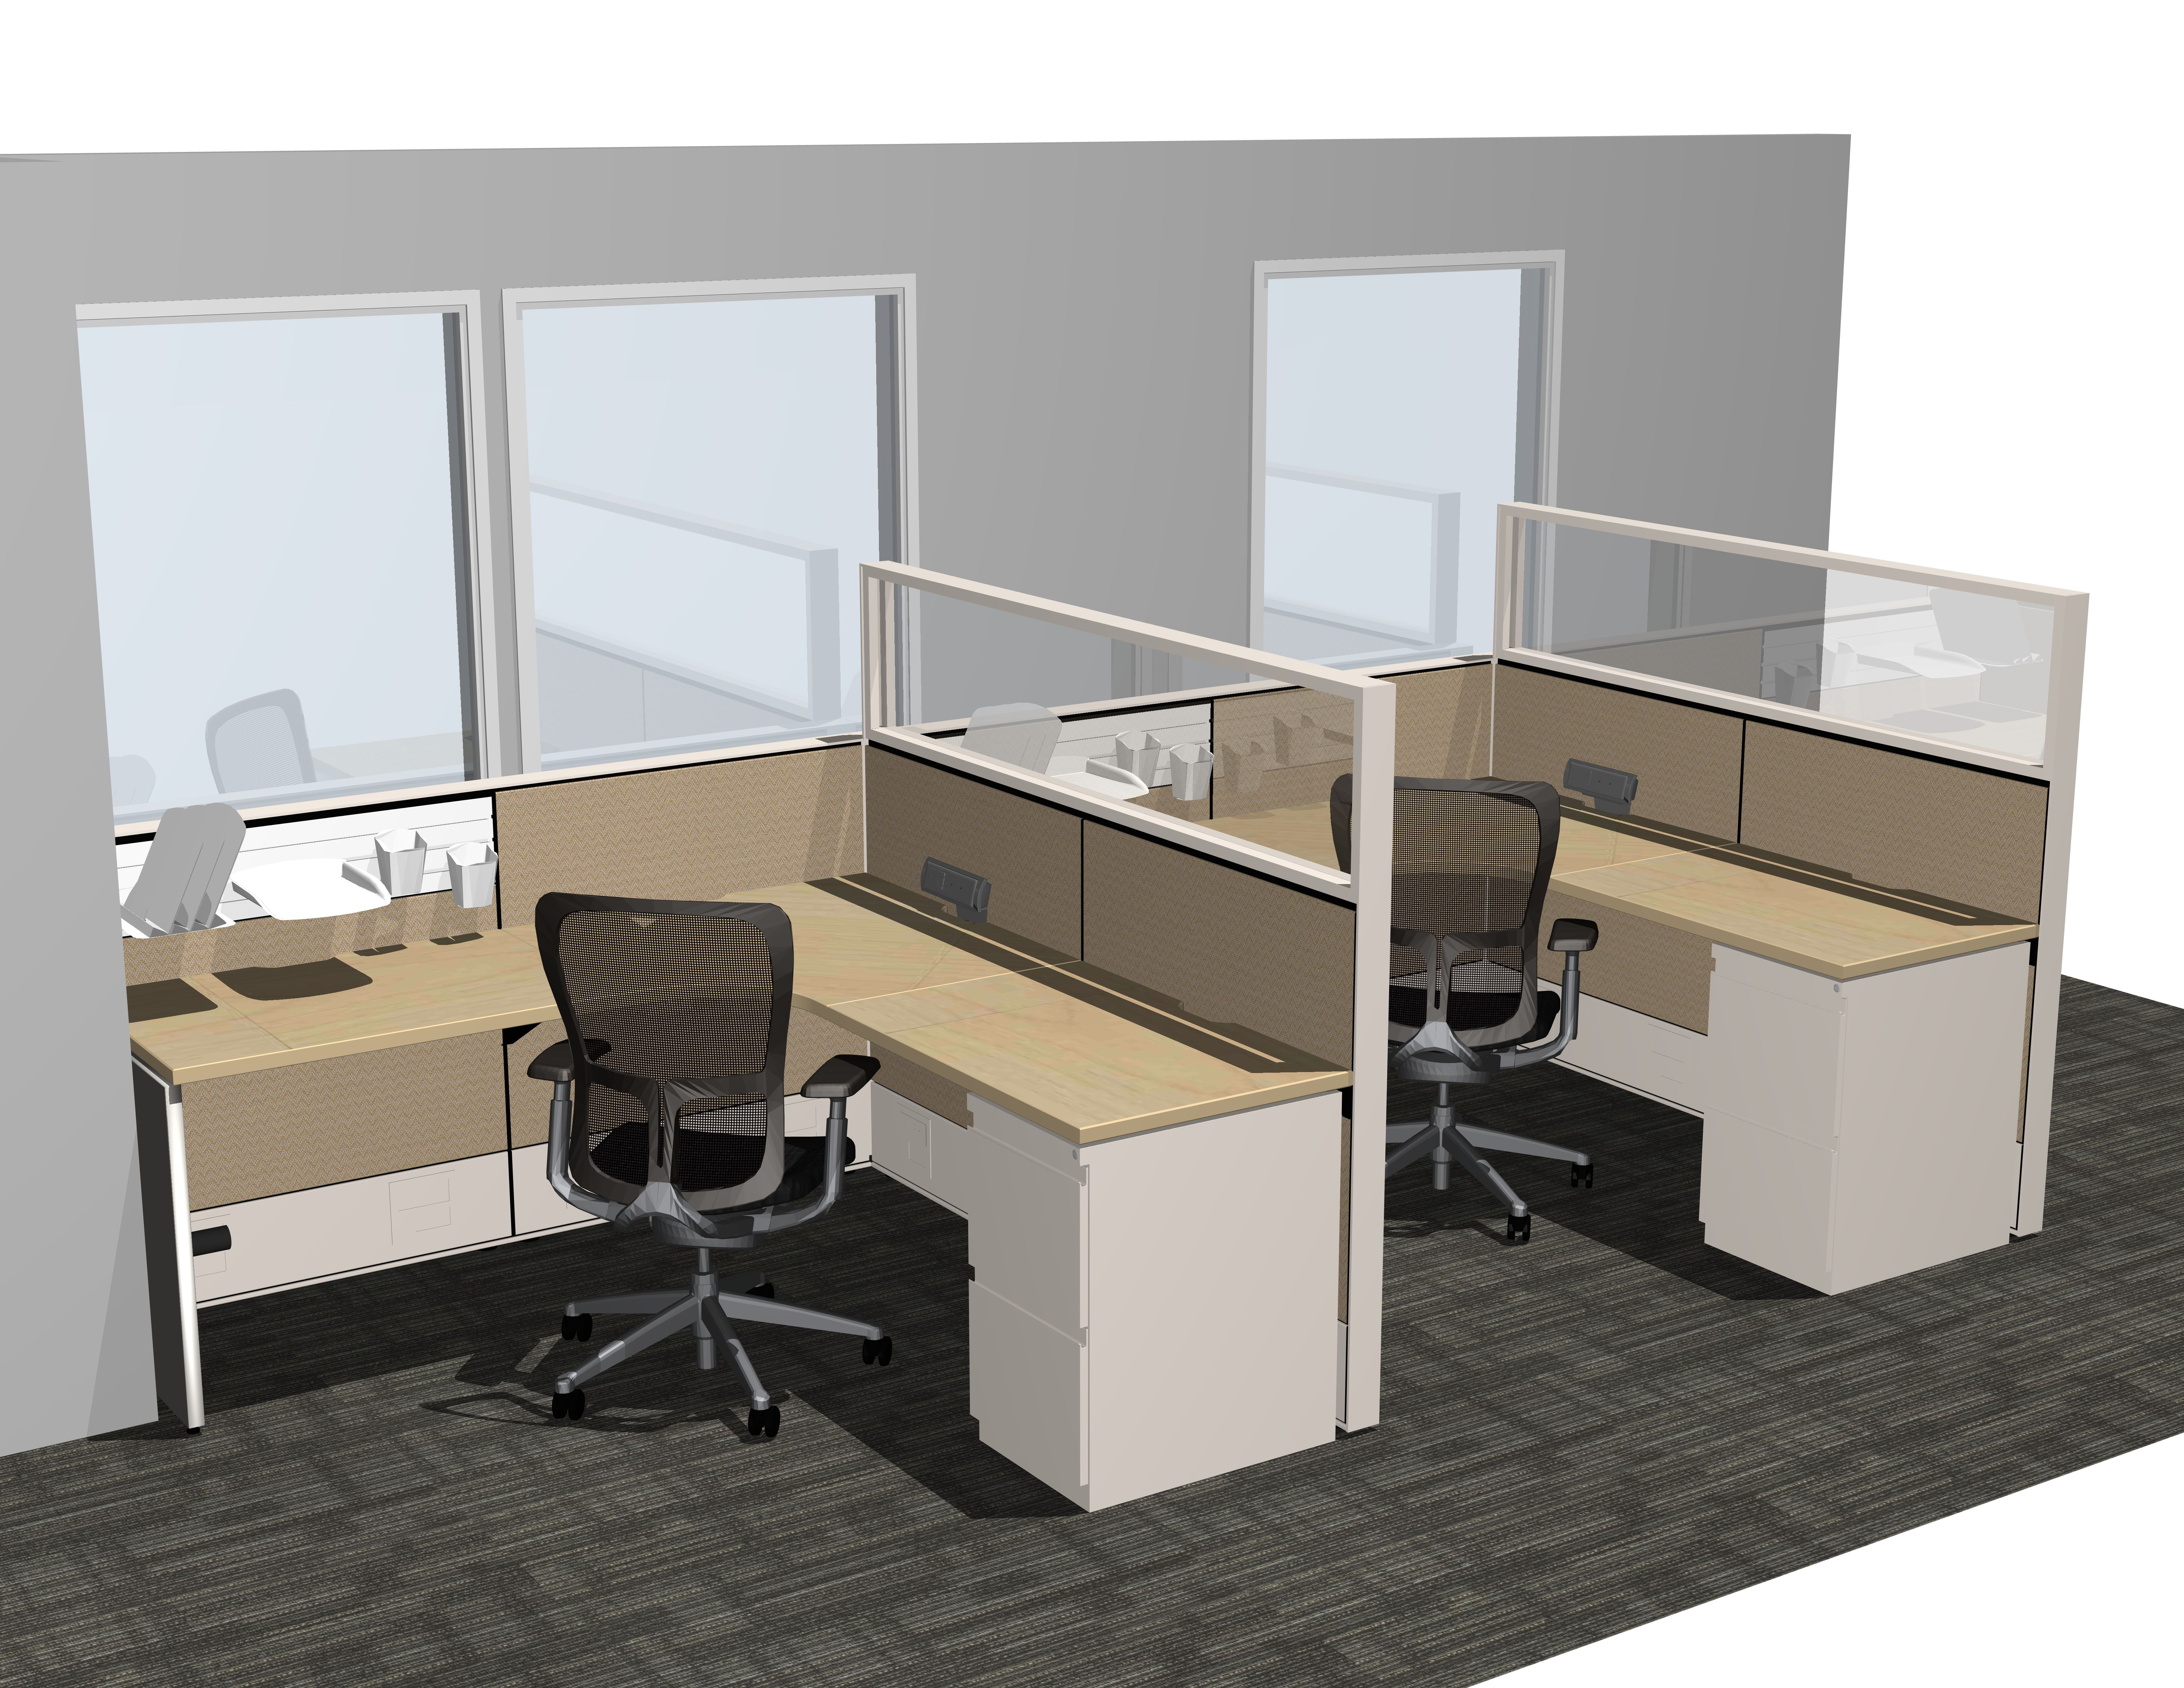 Interpret Layout 7 - Office Cubicles - Pinterest - Office Cubicles, Cubicle